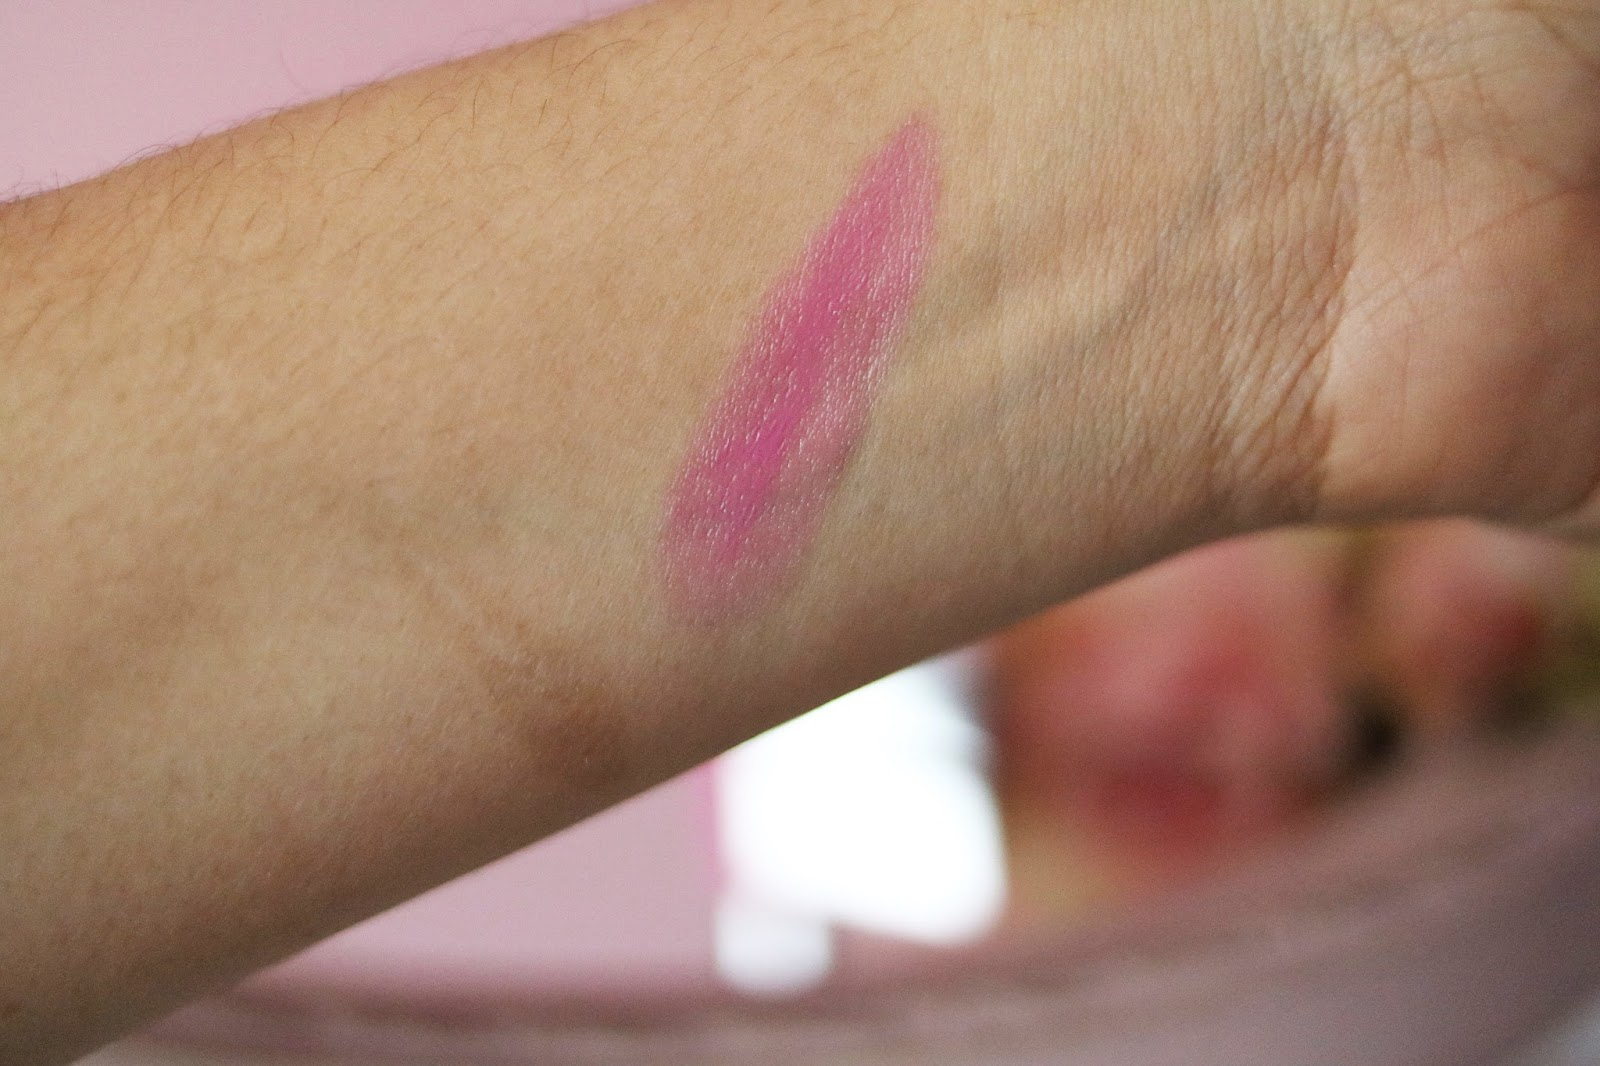 rosemademoiselle, rose mademoiselle , Clinique , Pop Glaze , Bubblegom Pop , Brillant à lèvres , Base Lisante , Hydrantation Lèvres , Pop , Octoly , revue , beauté , blog beauté, paris , swatch , test